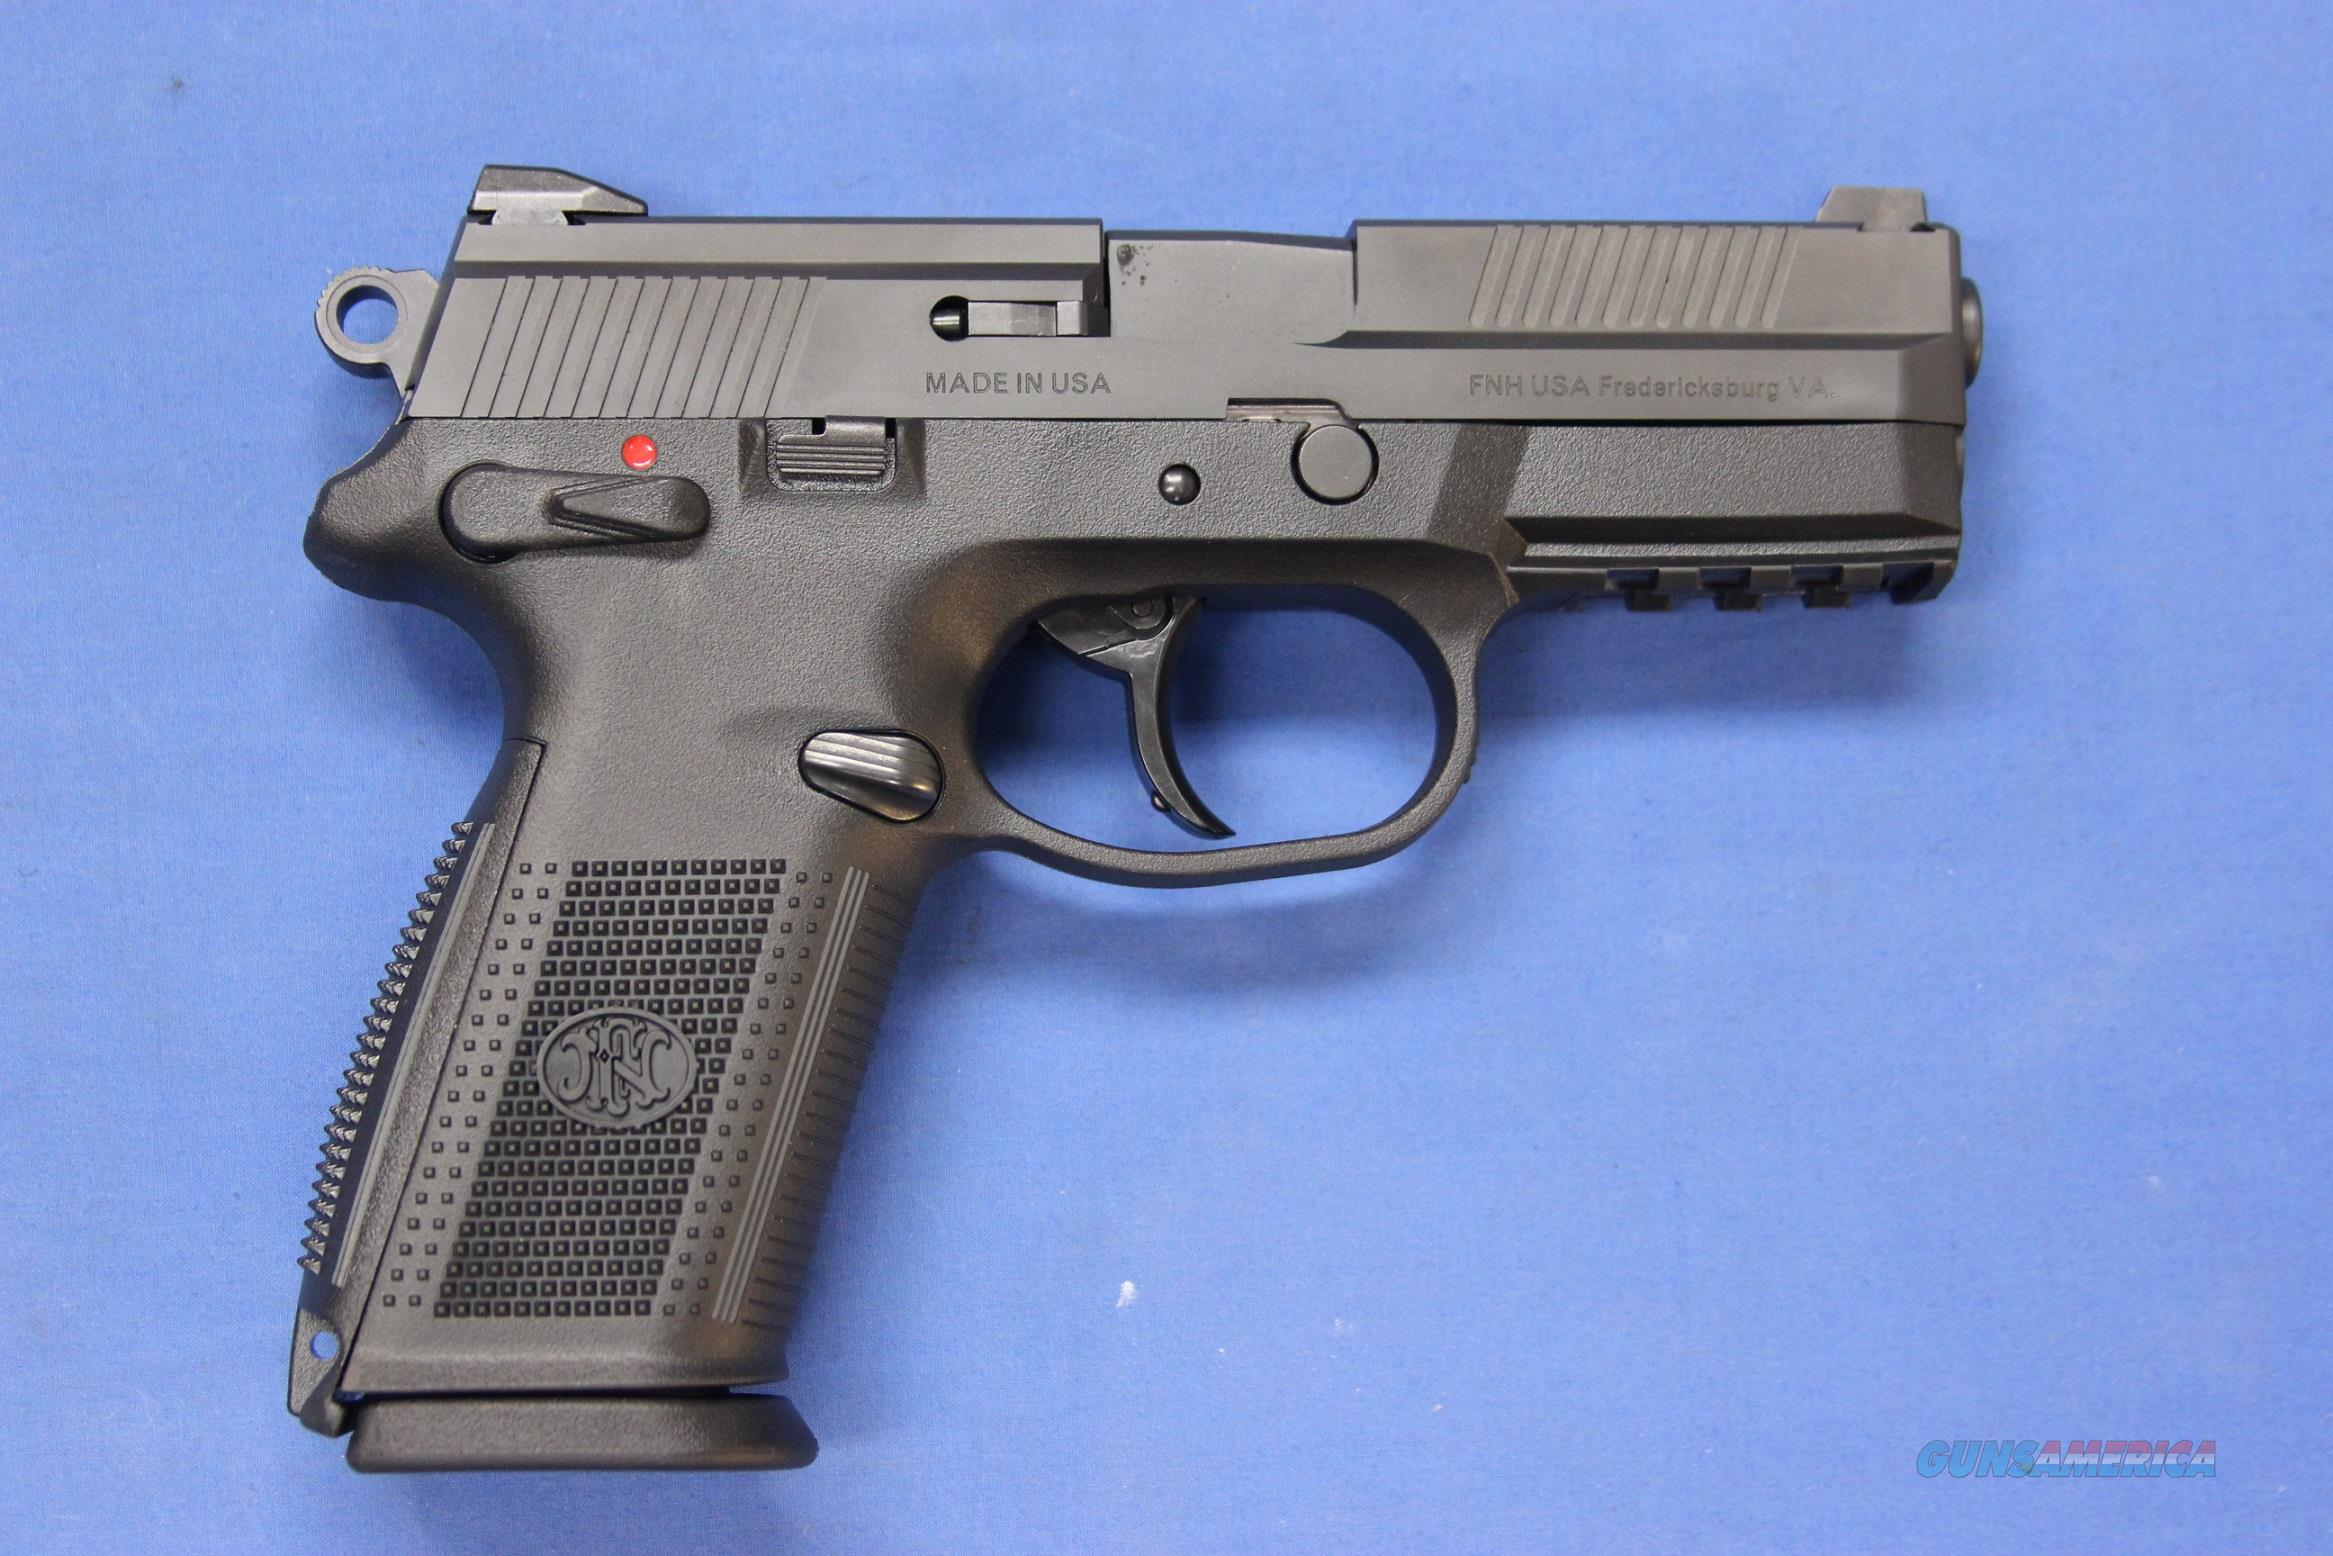 FNH USA FNX-9 PISTOL 9mm - NEW w/BOX & 3 MAGS      Guns > Pistols > FNH - Fabrique Nationale (FN) Pistols > FNX